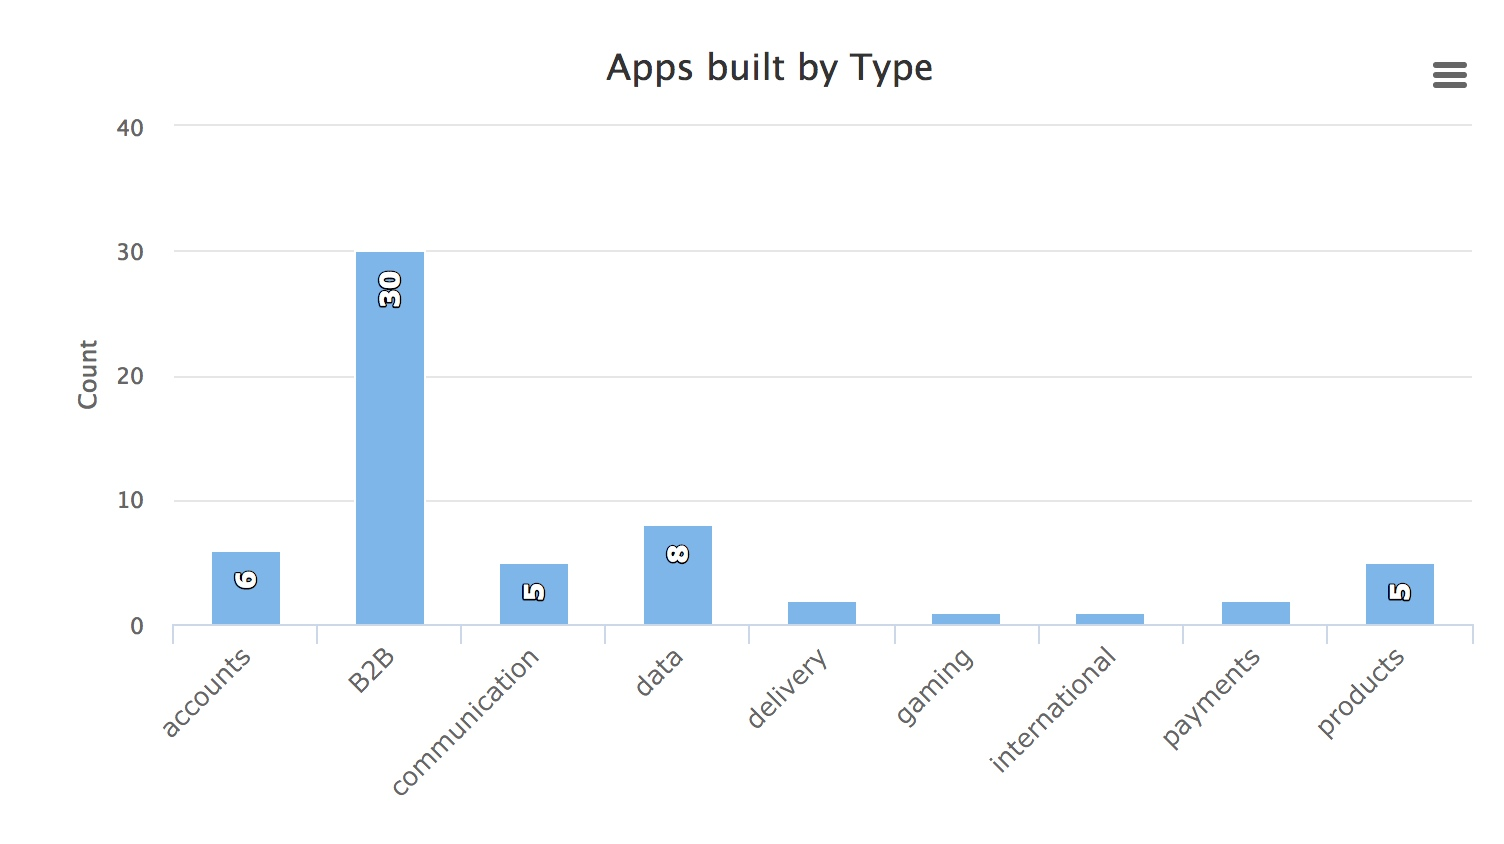 Overview apps by type